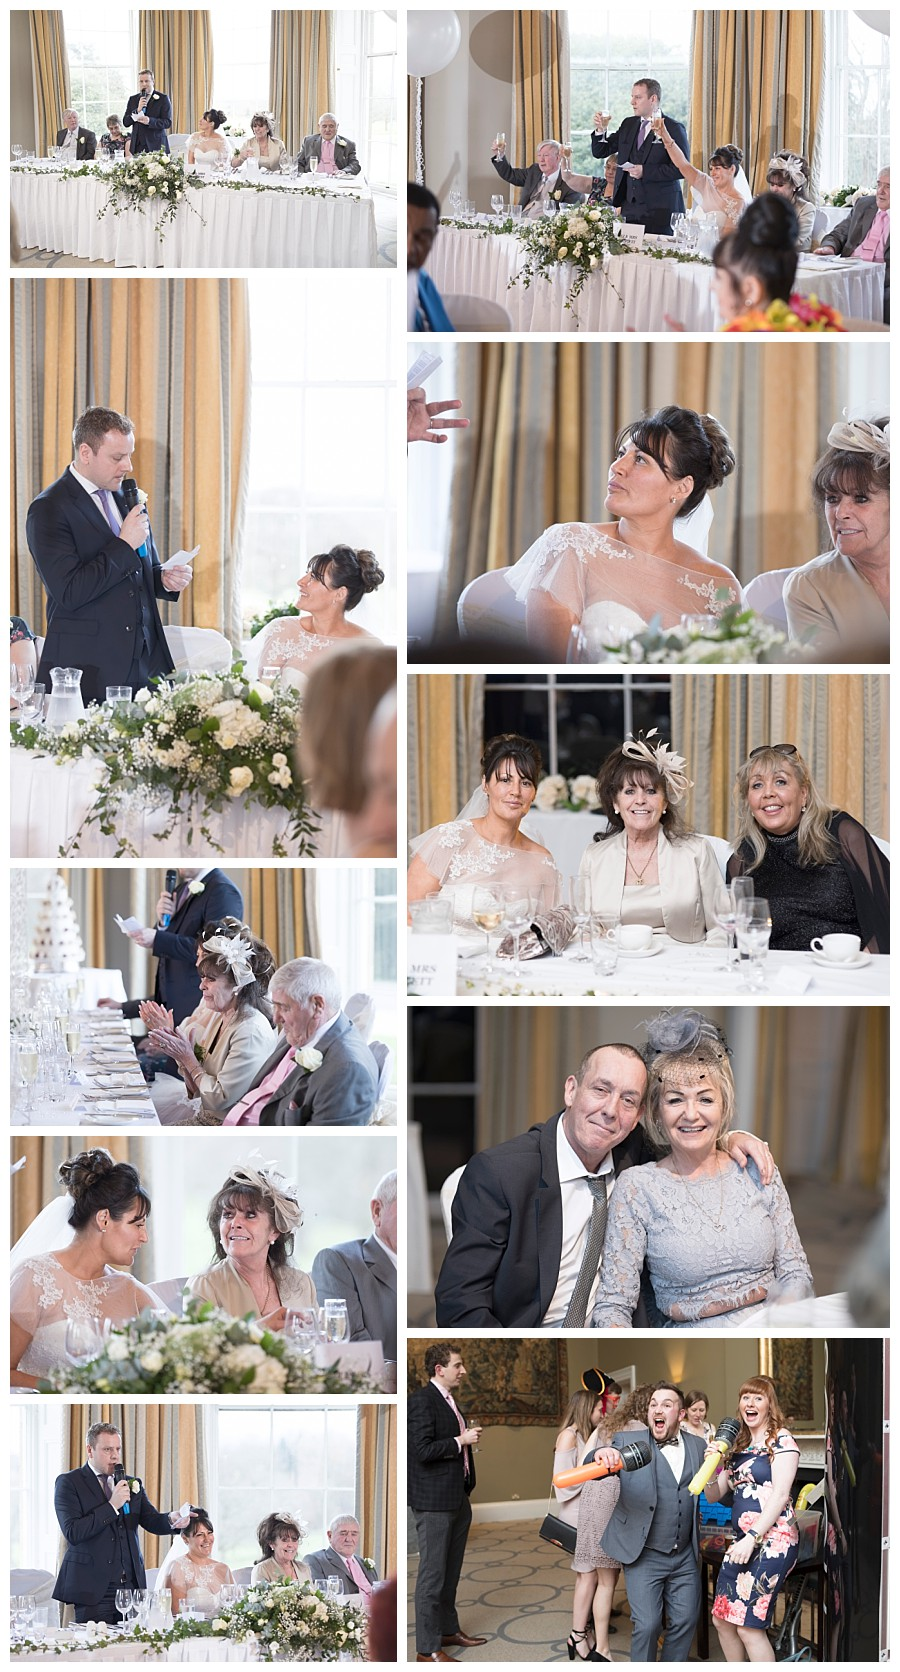 wedding reception photos rudding park hotel, speeches photos rudding park weddings, photographer Harrogate